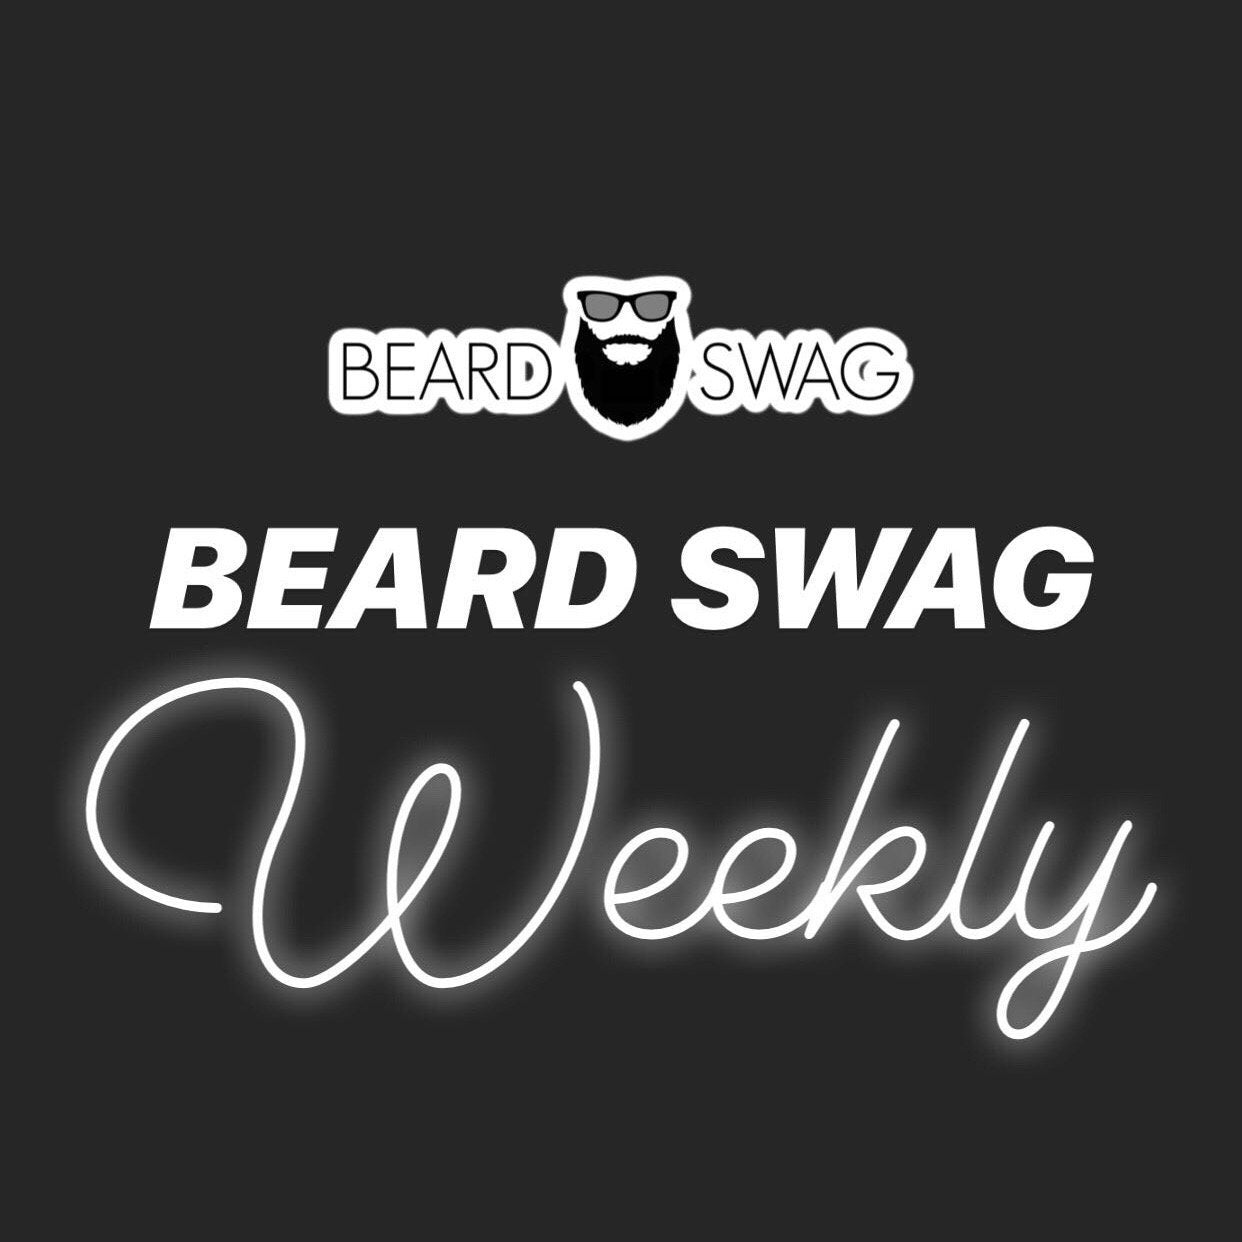 Beard Swag Weekly - The Beginning | Beard Swag